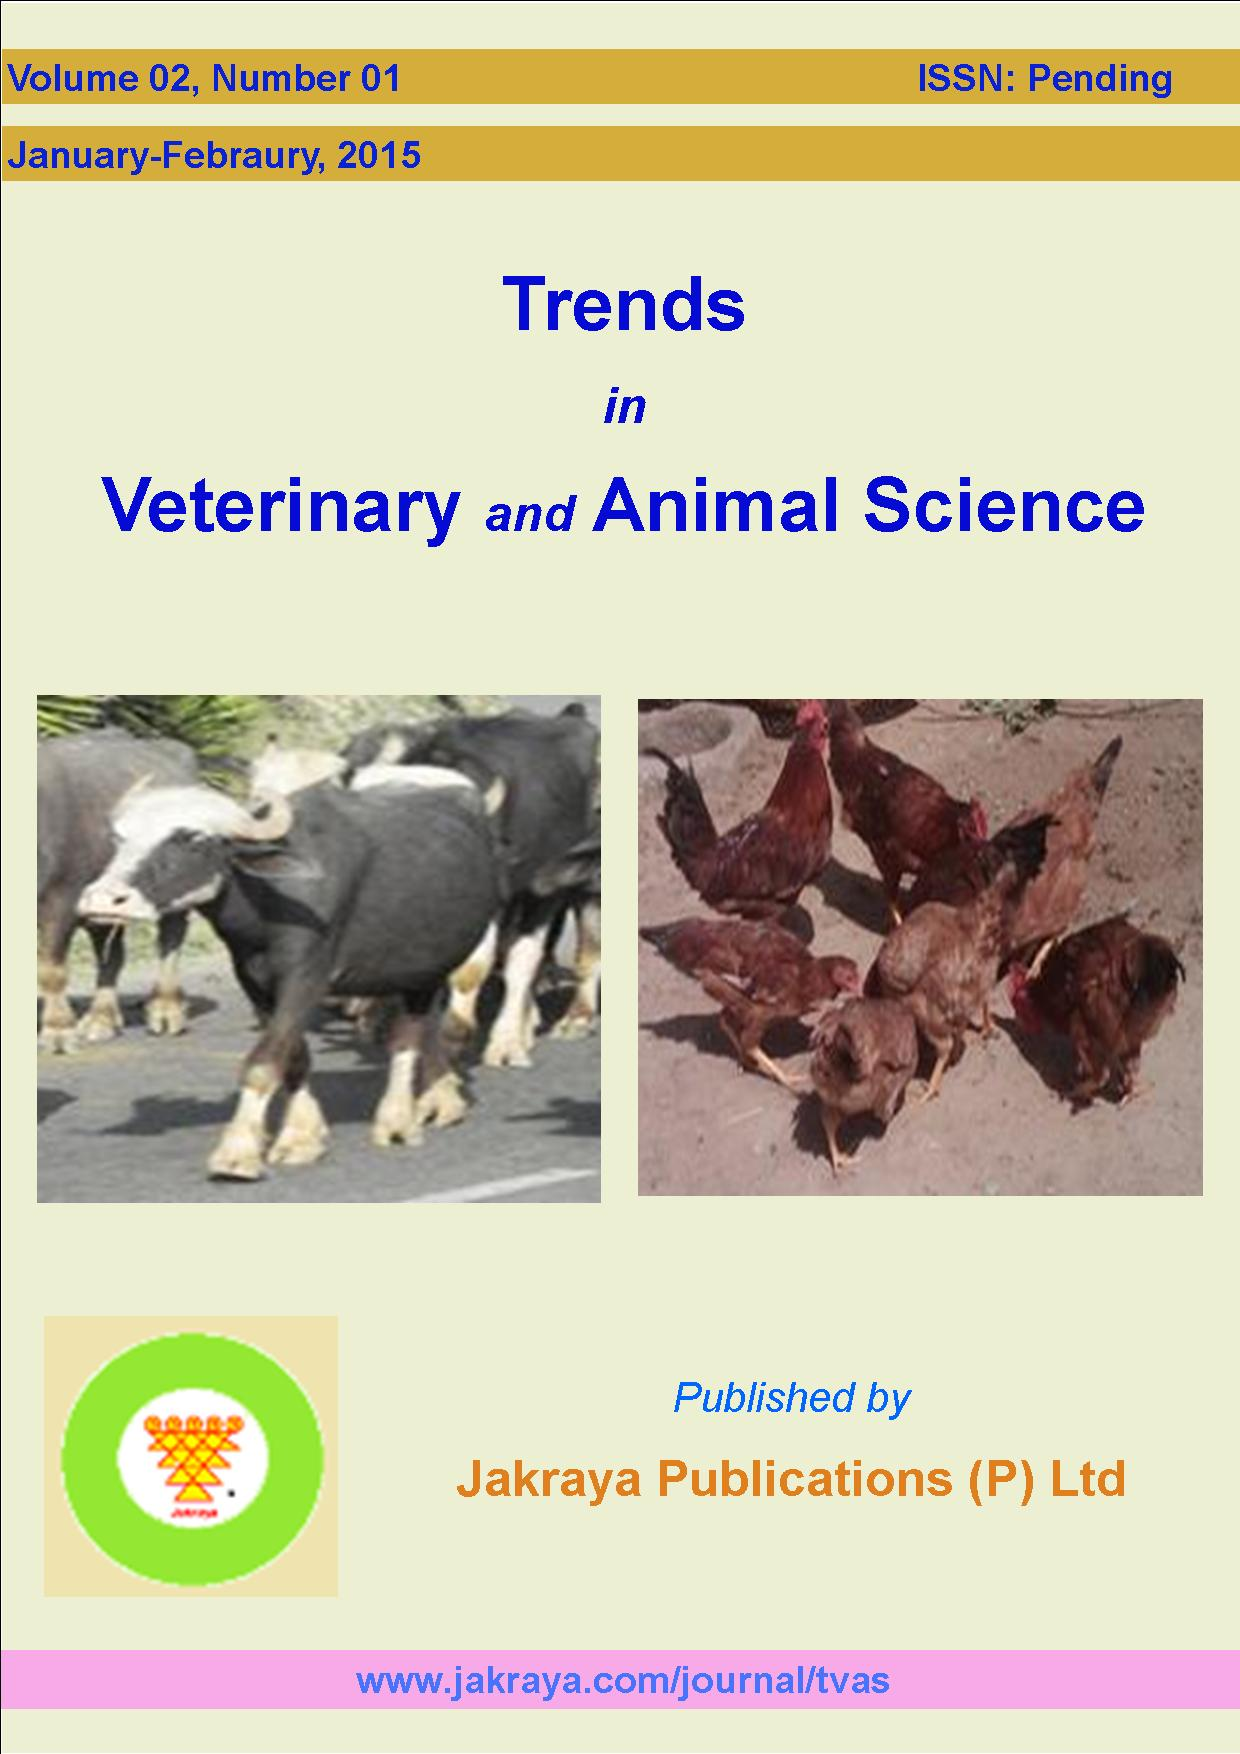 Trends in Veterinary and Animal Sciences